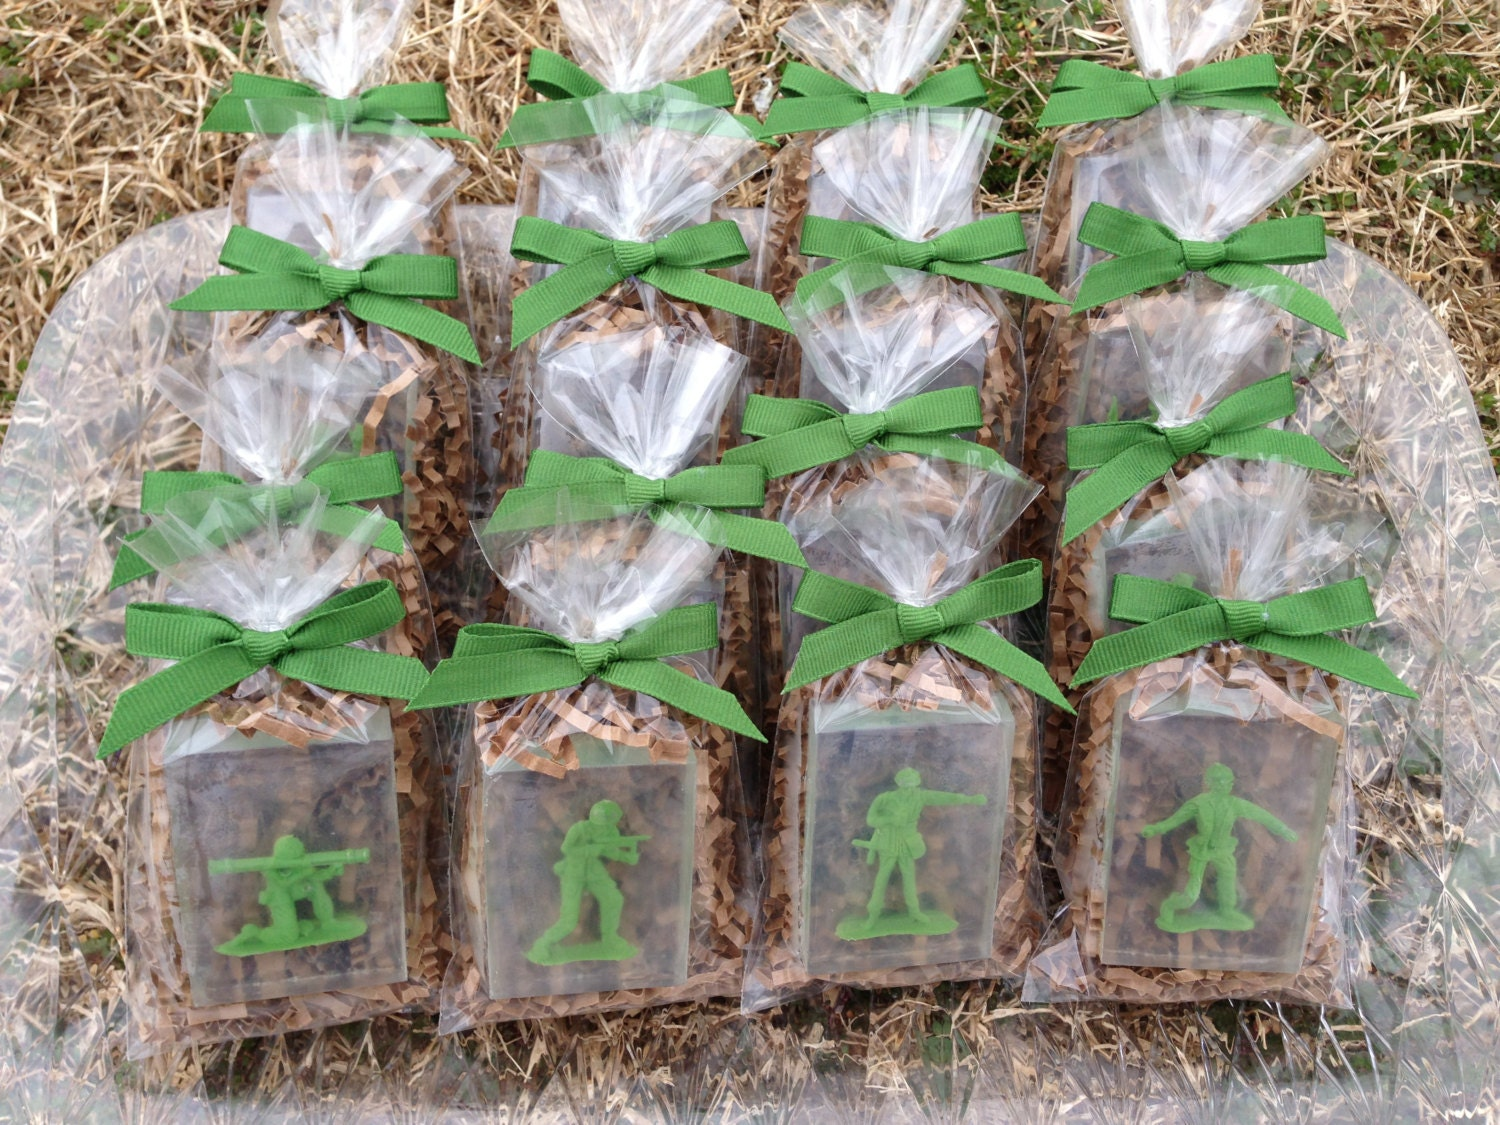 10 soldier soap kids soap party favors army soldiertoy for Army party decoration